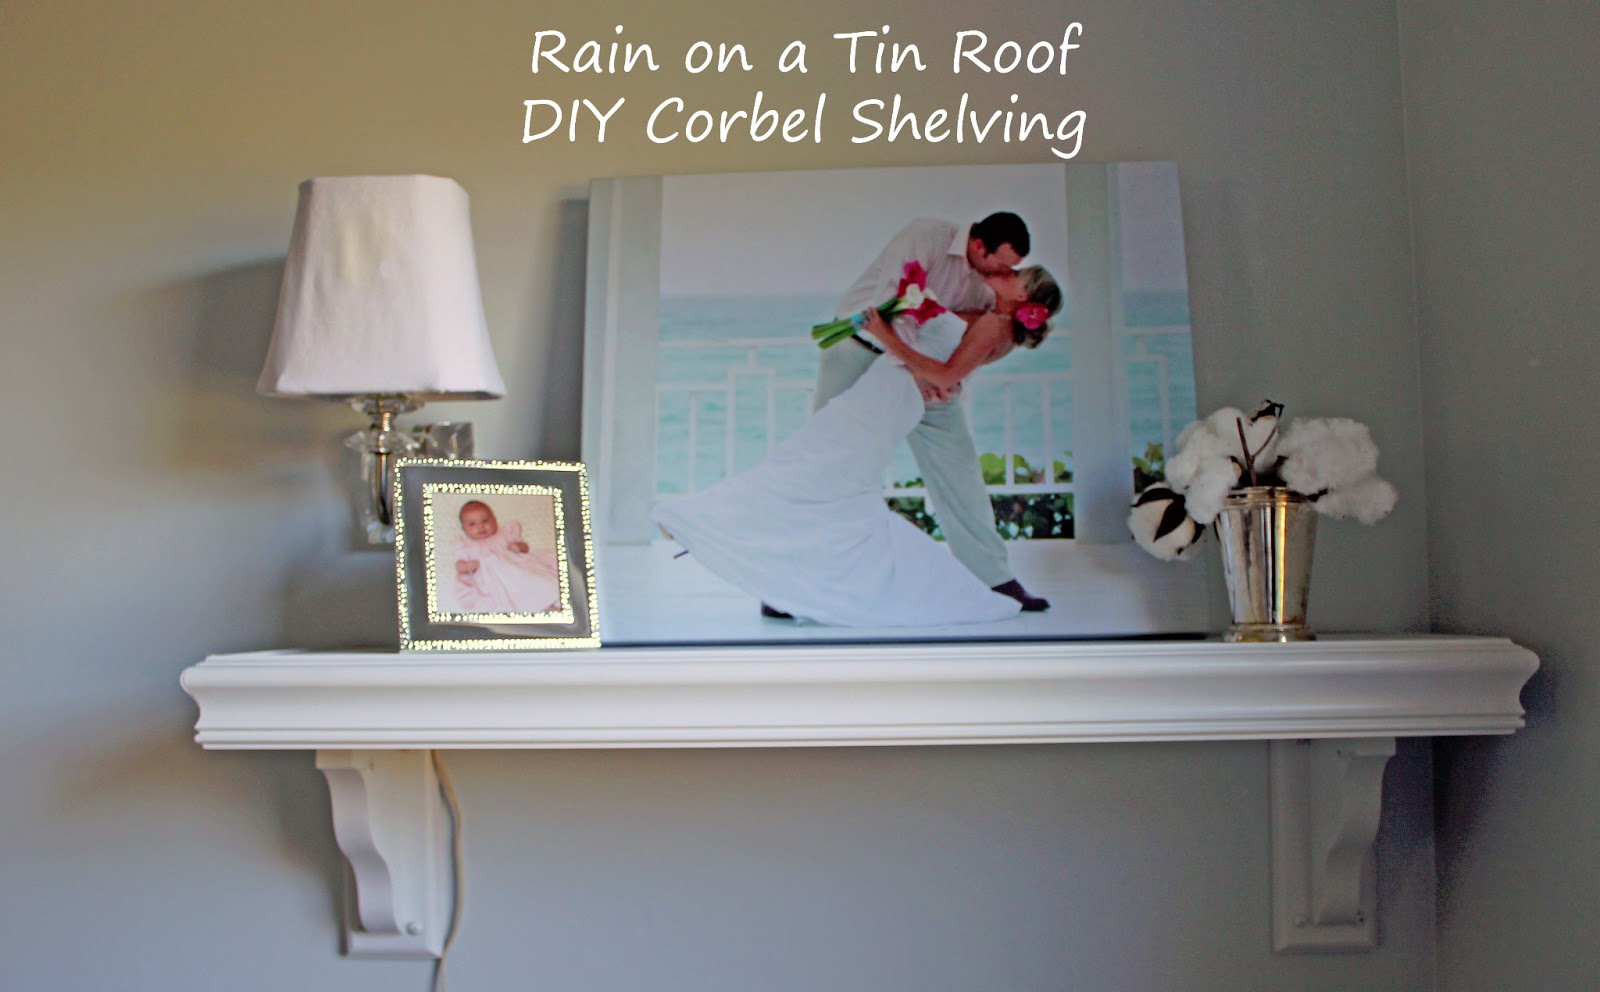 diy corbel shelving rh rainonatinroof com corbels for shelving Corbels for Granite Countertops